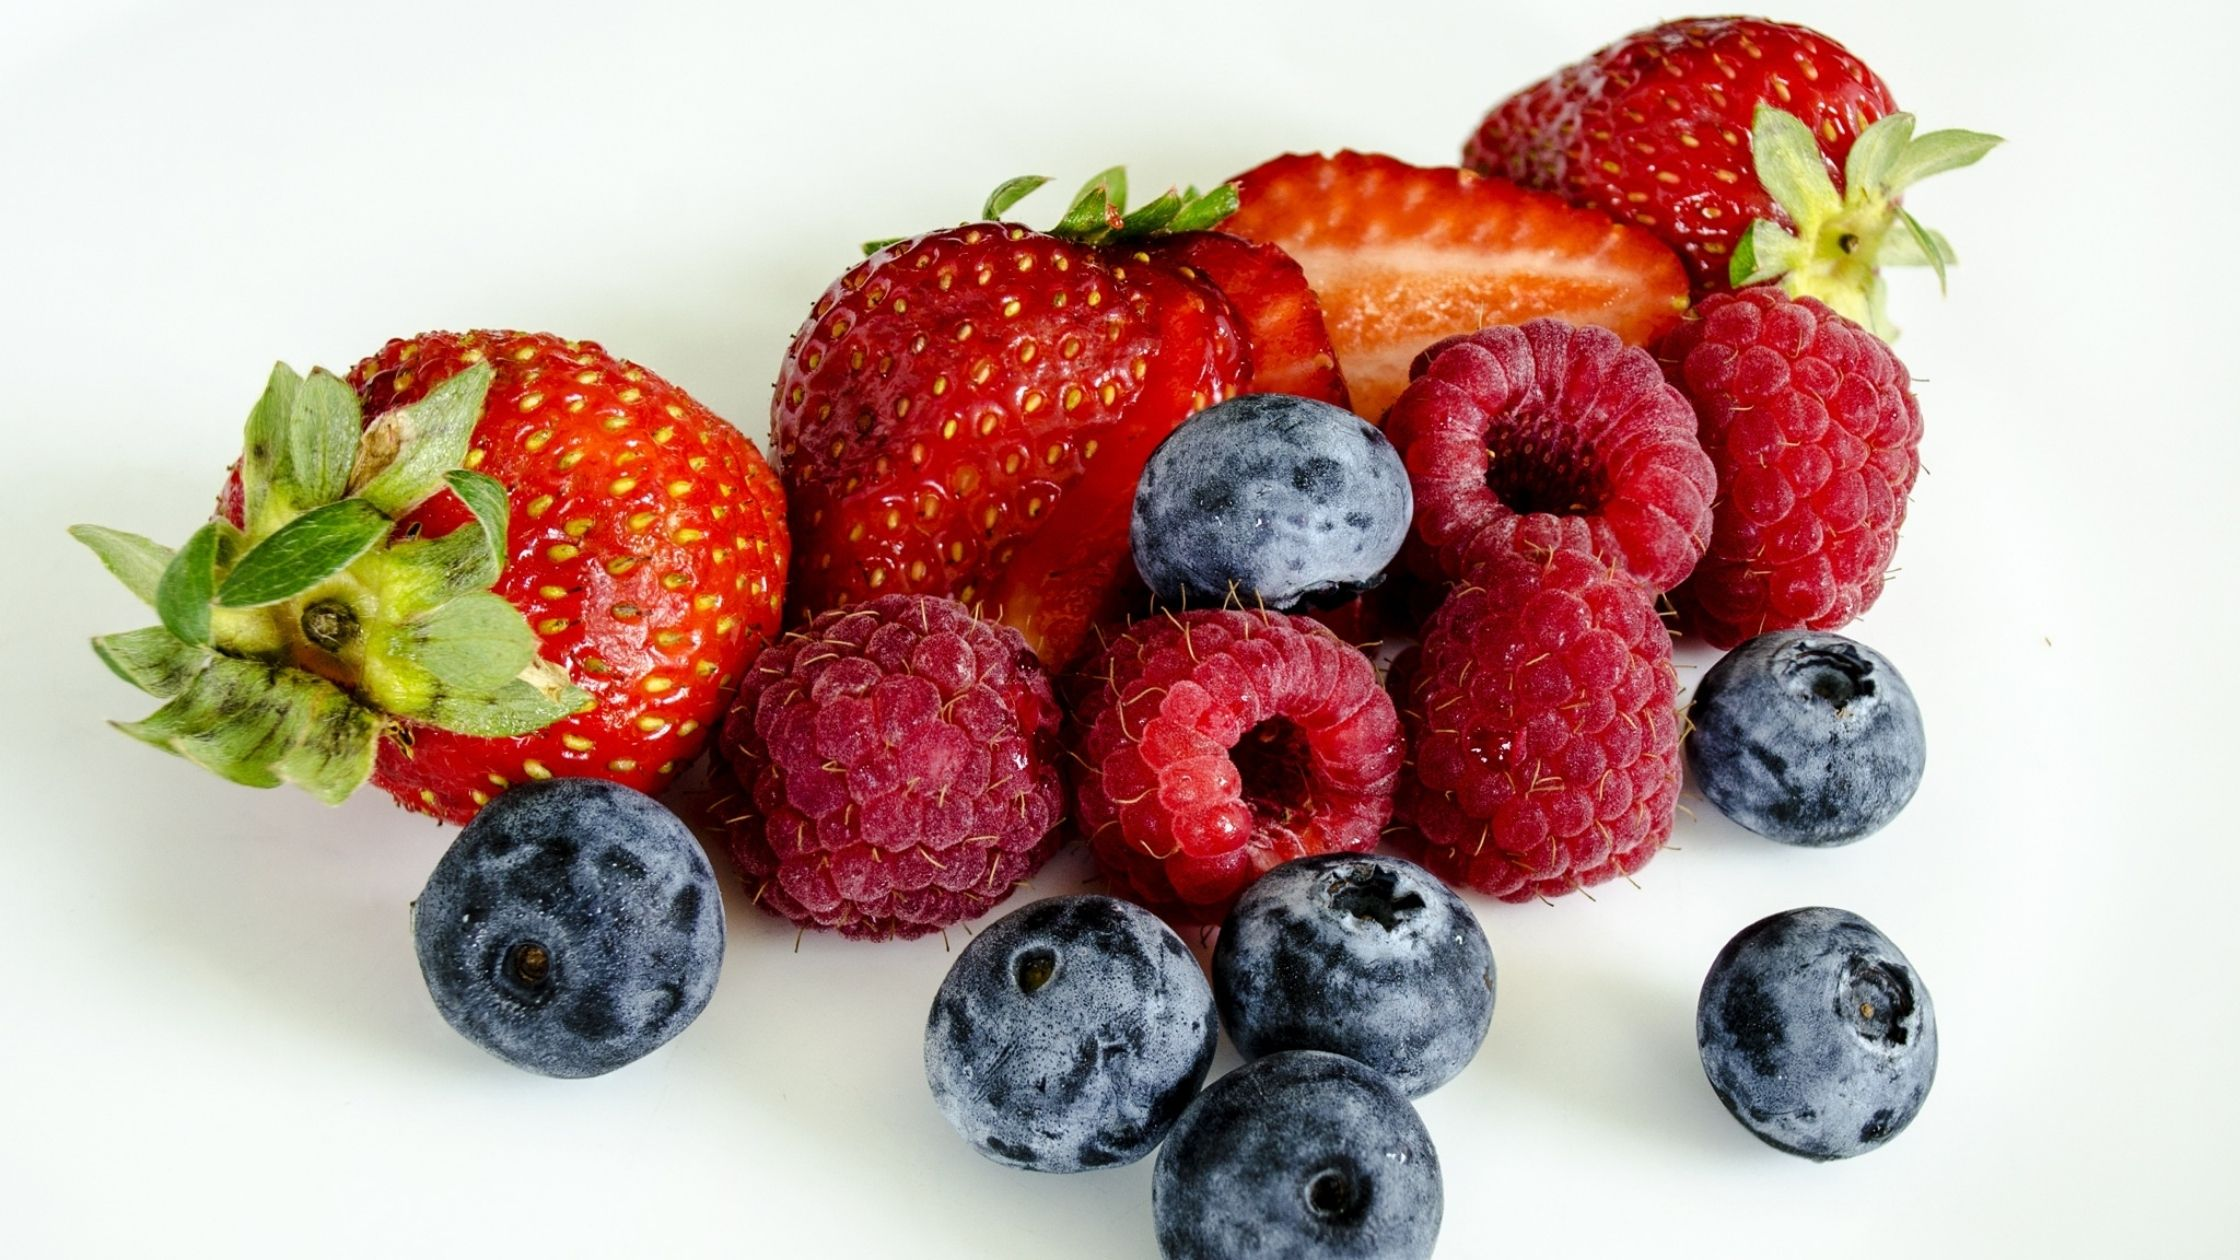 What Fruit Can You Eat On Keto Diet?